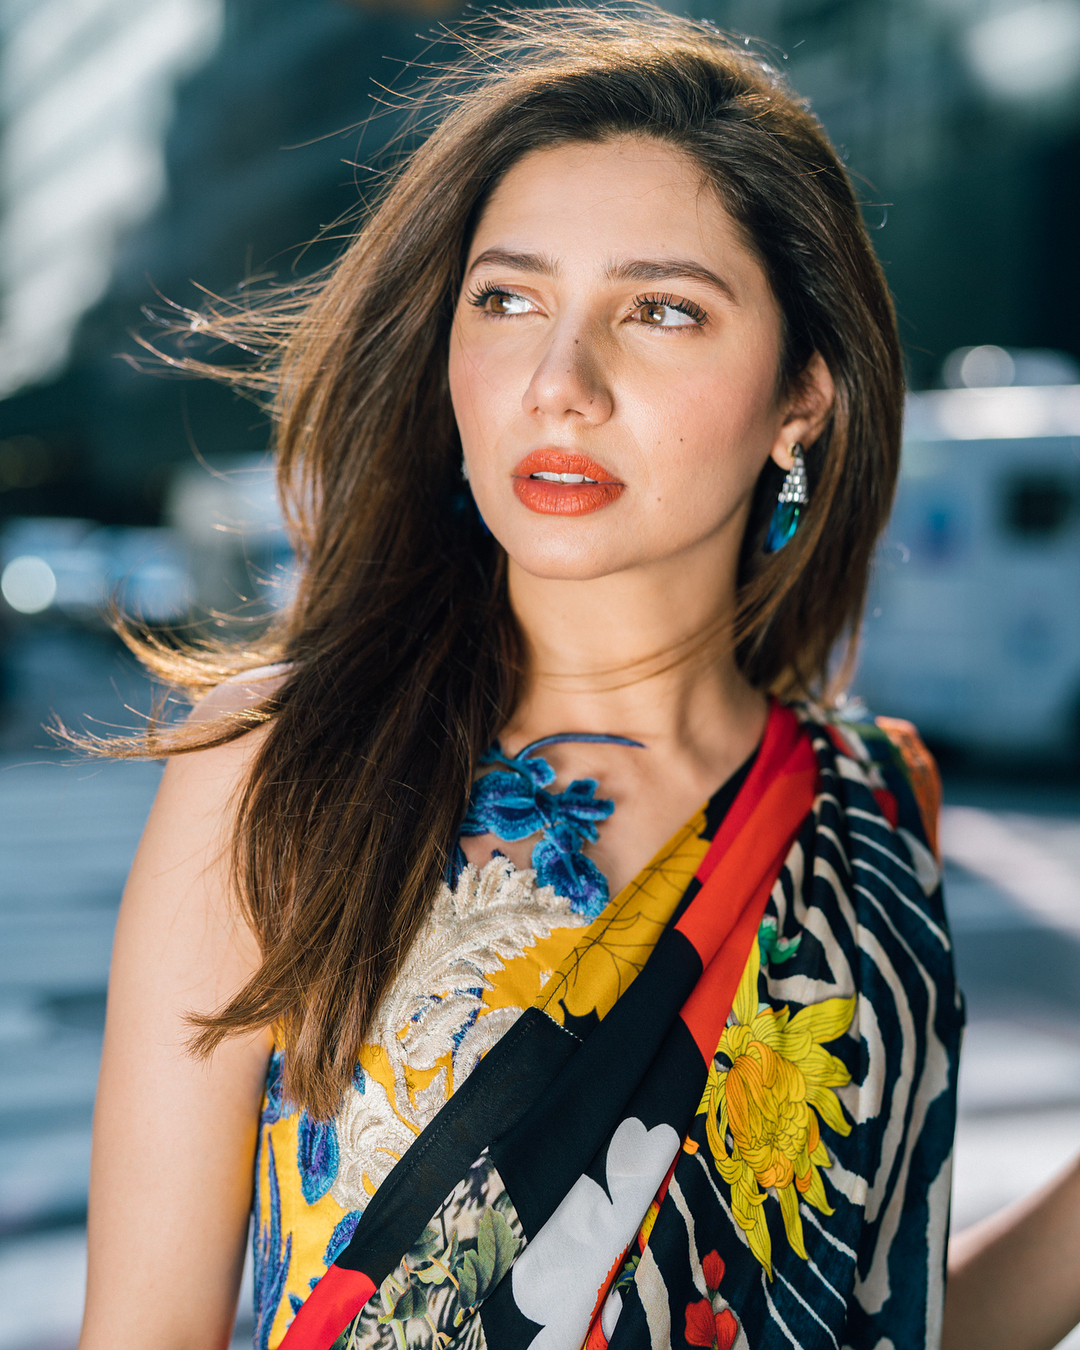 PHOTO: INSTAGRAM/ MAHIRA KHAN